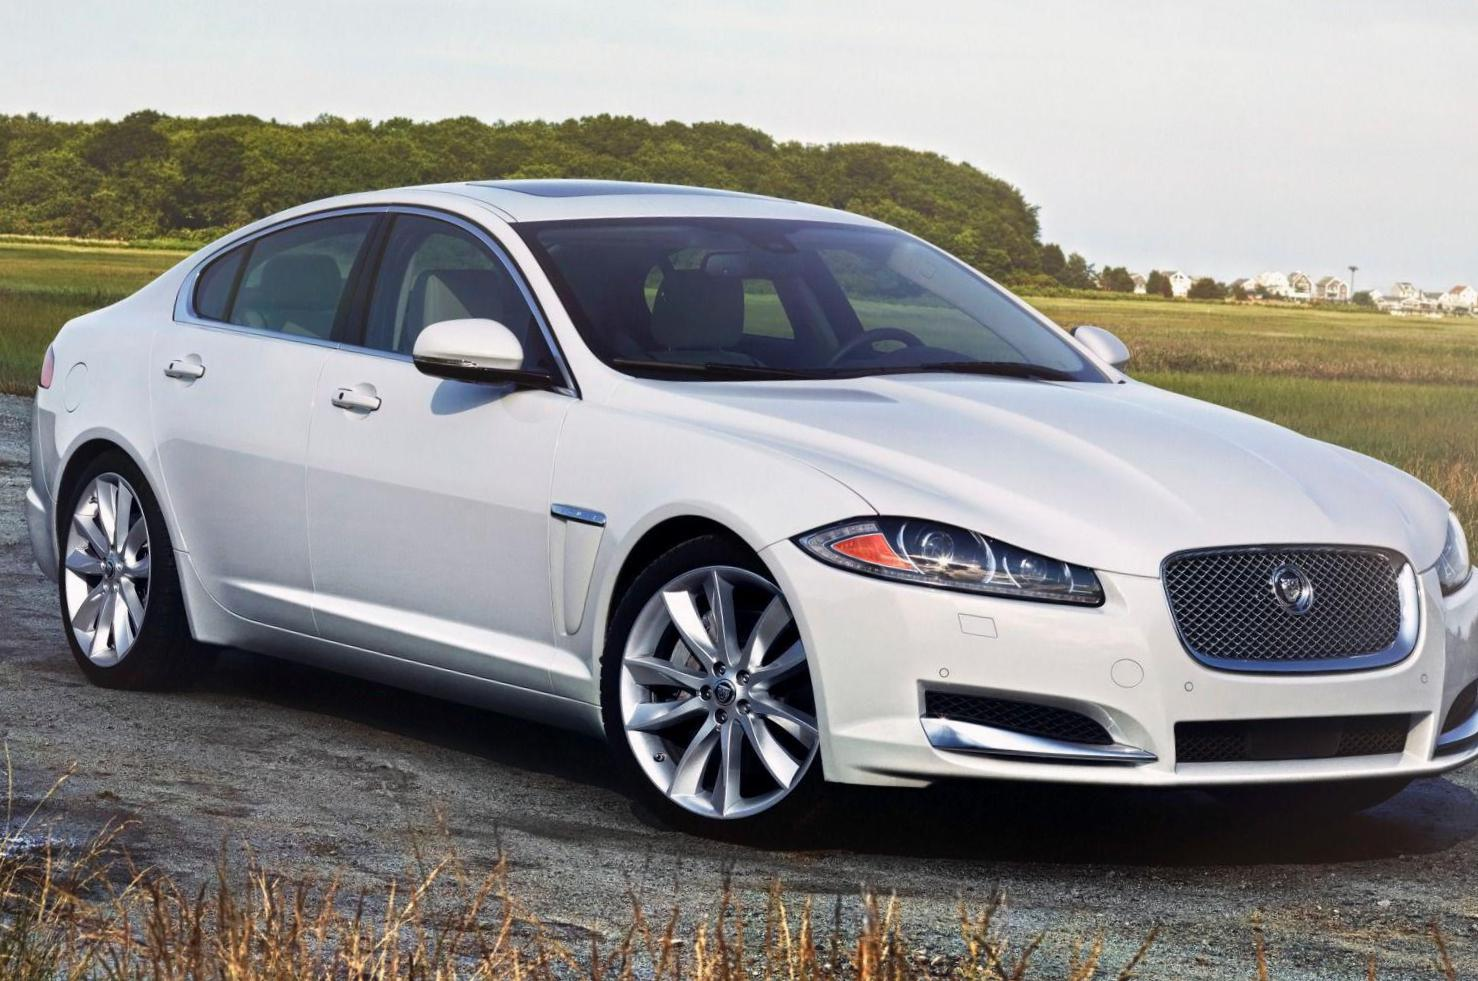 XF Jaguar approved wagon